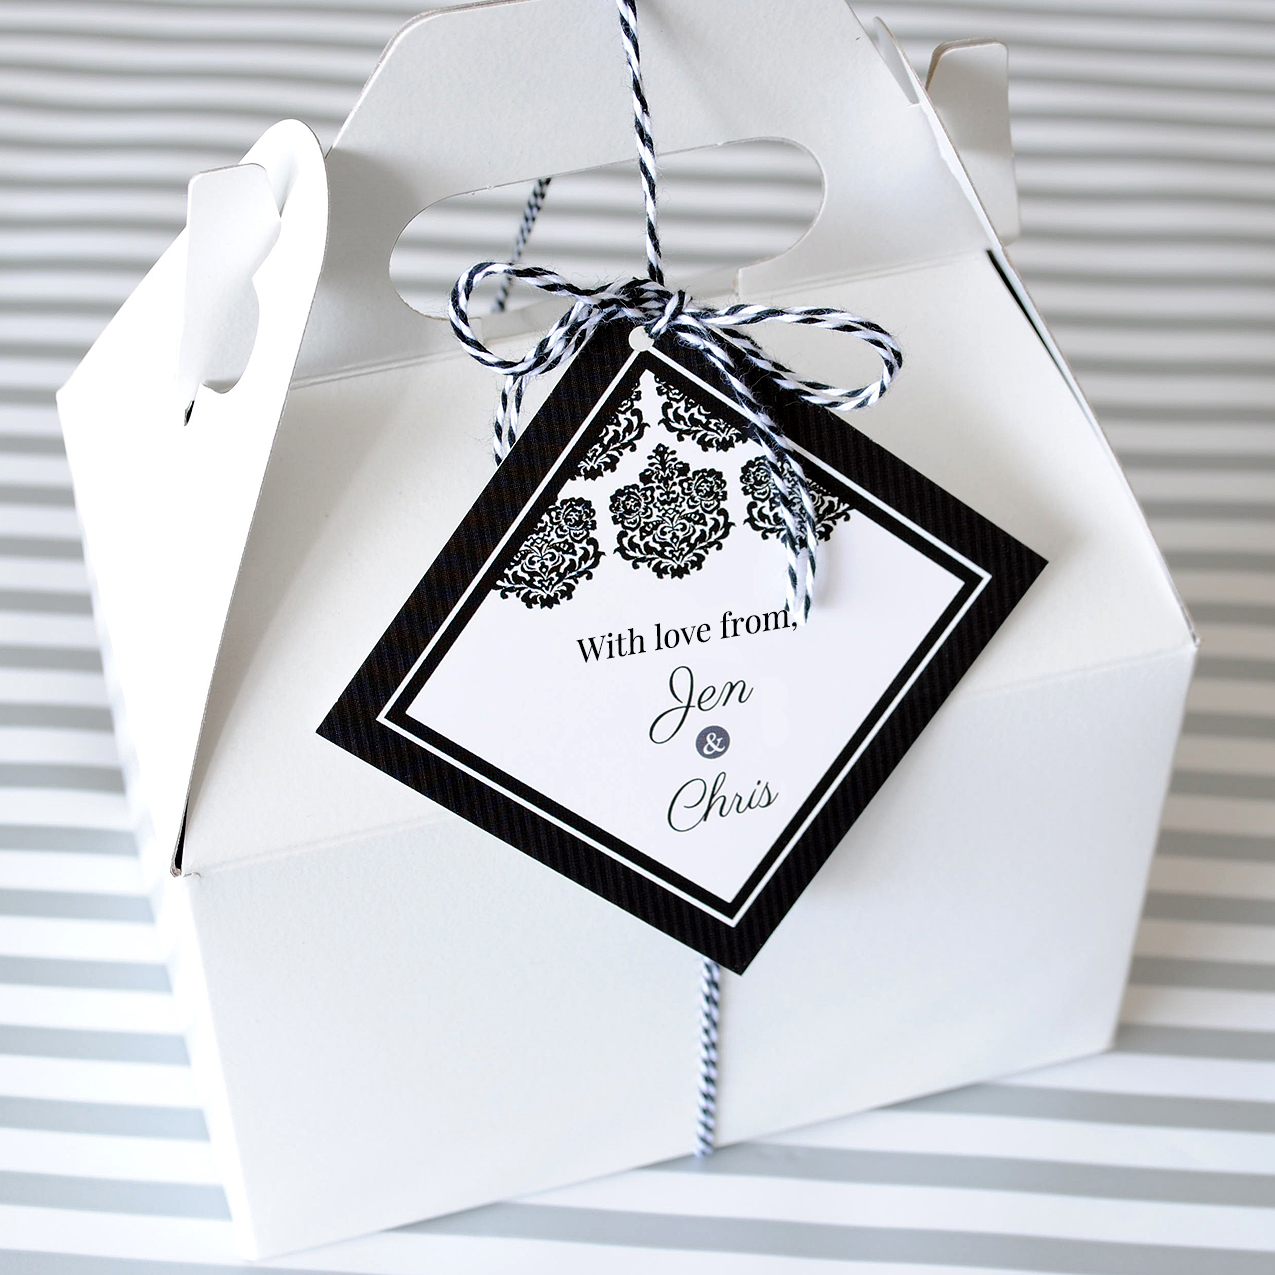 Custom hang tag created for a gift box. Make yours online using a pre-made template.